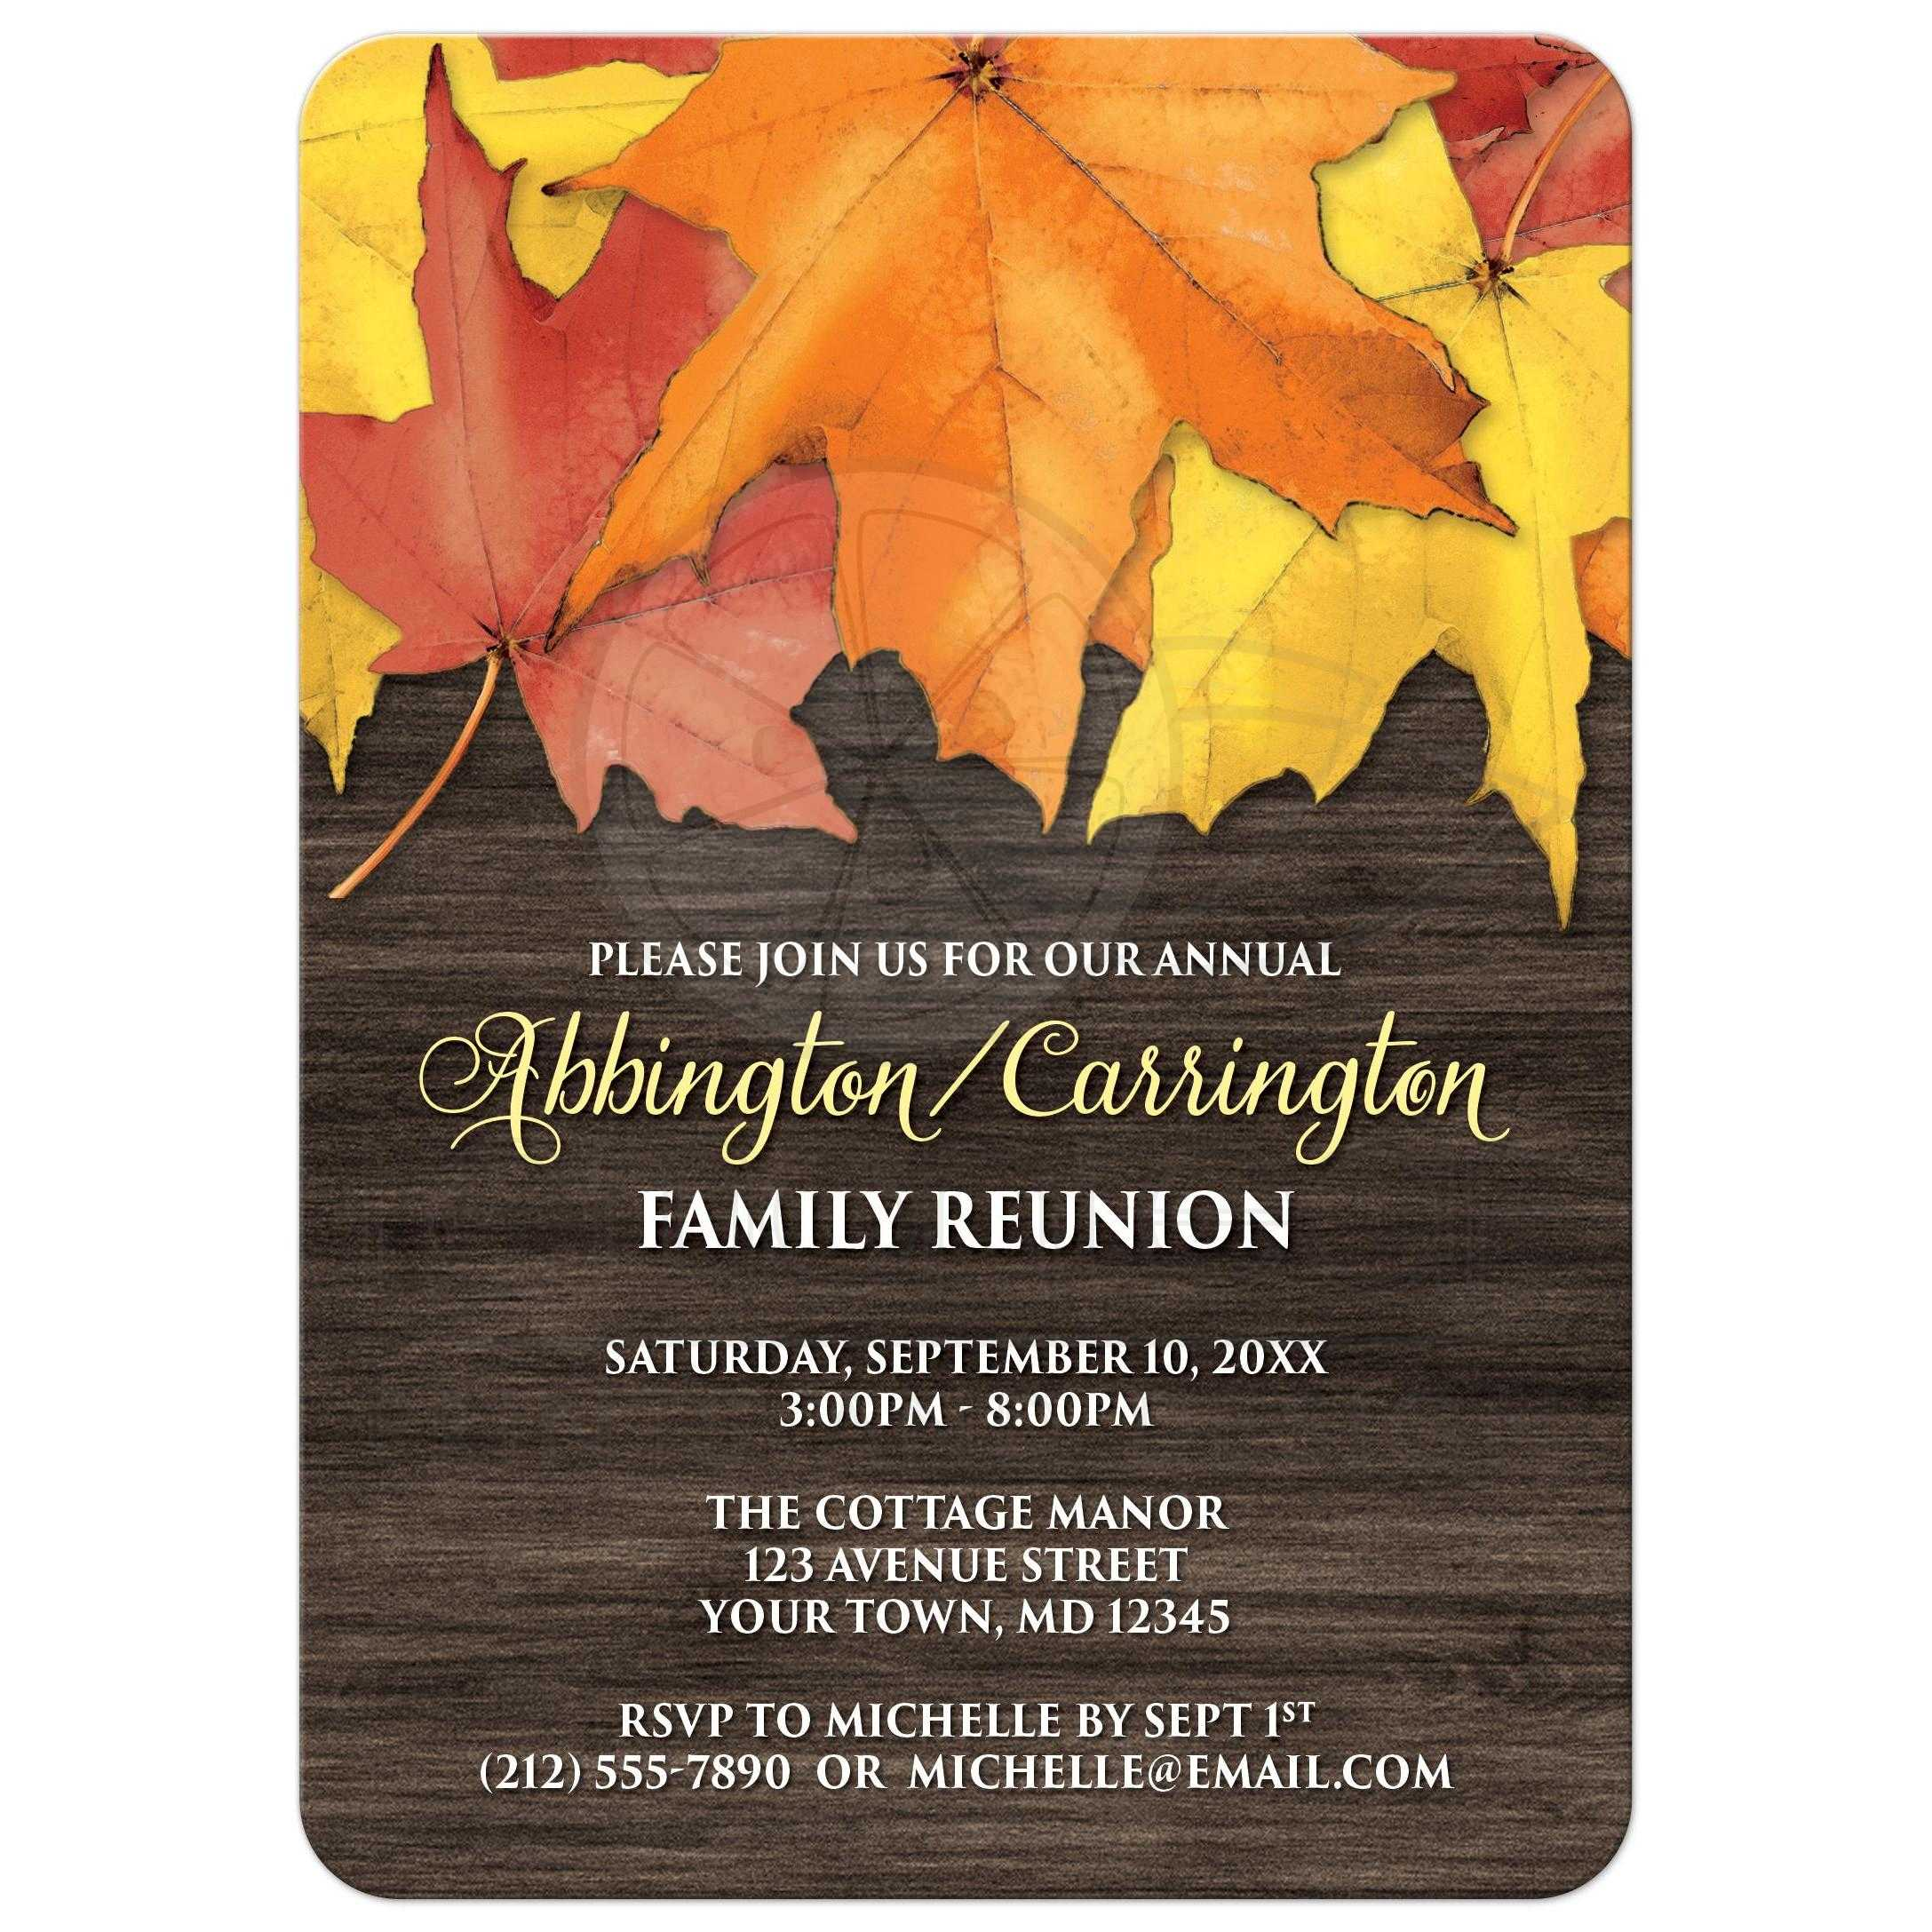 Family Reunion Invitations   Rustic Autumn Leaves And Wood Within Family Reunion Invitation Cards